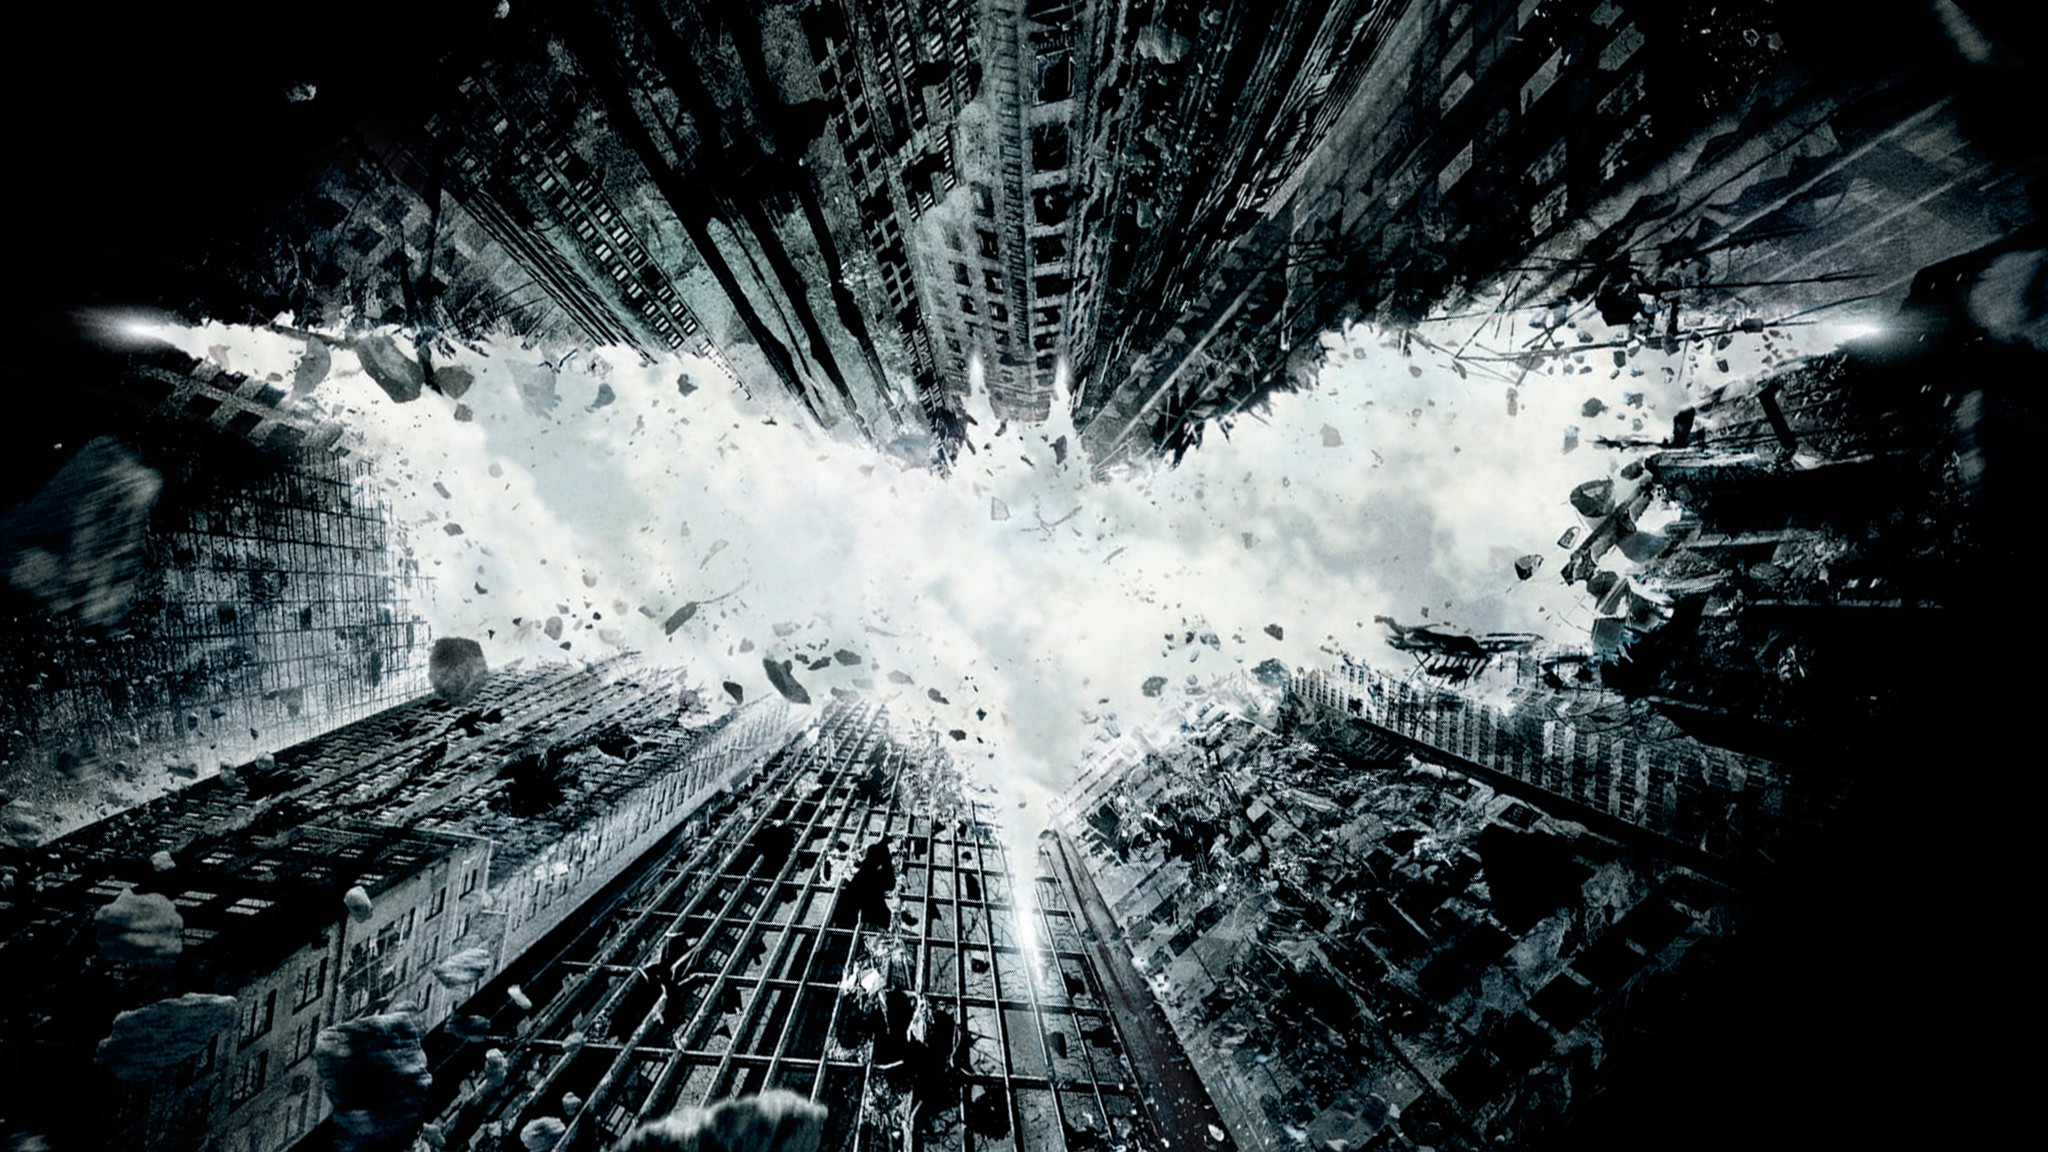 Hd Wallpapers Fantasy 79 Images: The Dark Knight Rises HD Wallpapers (79+ Images